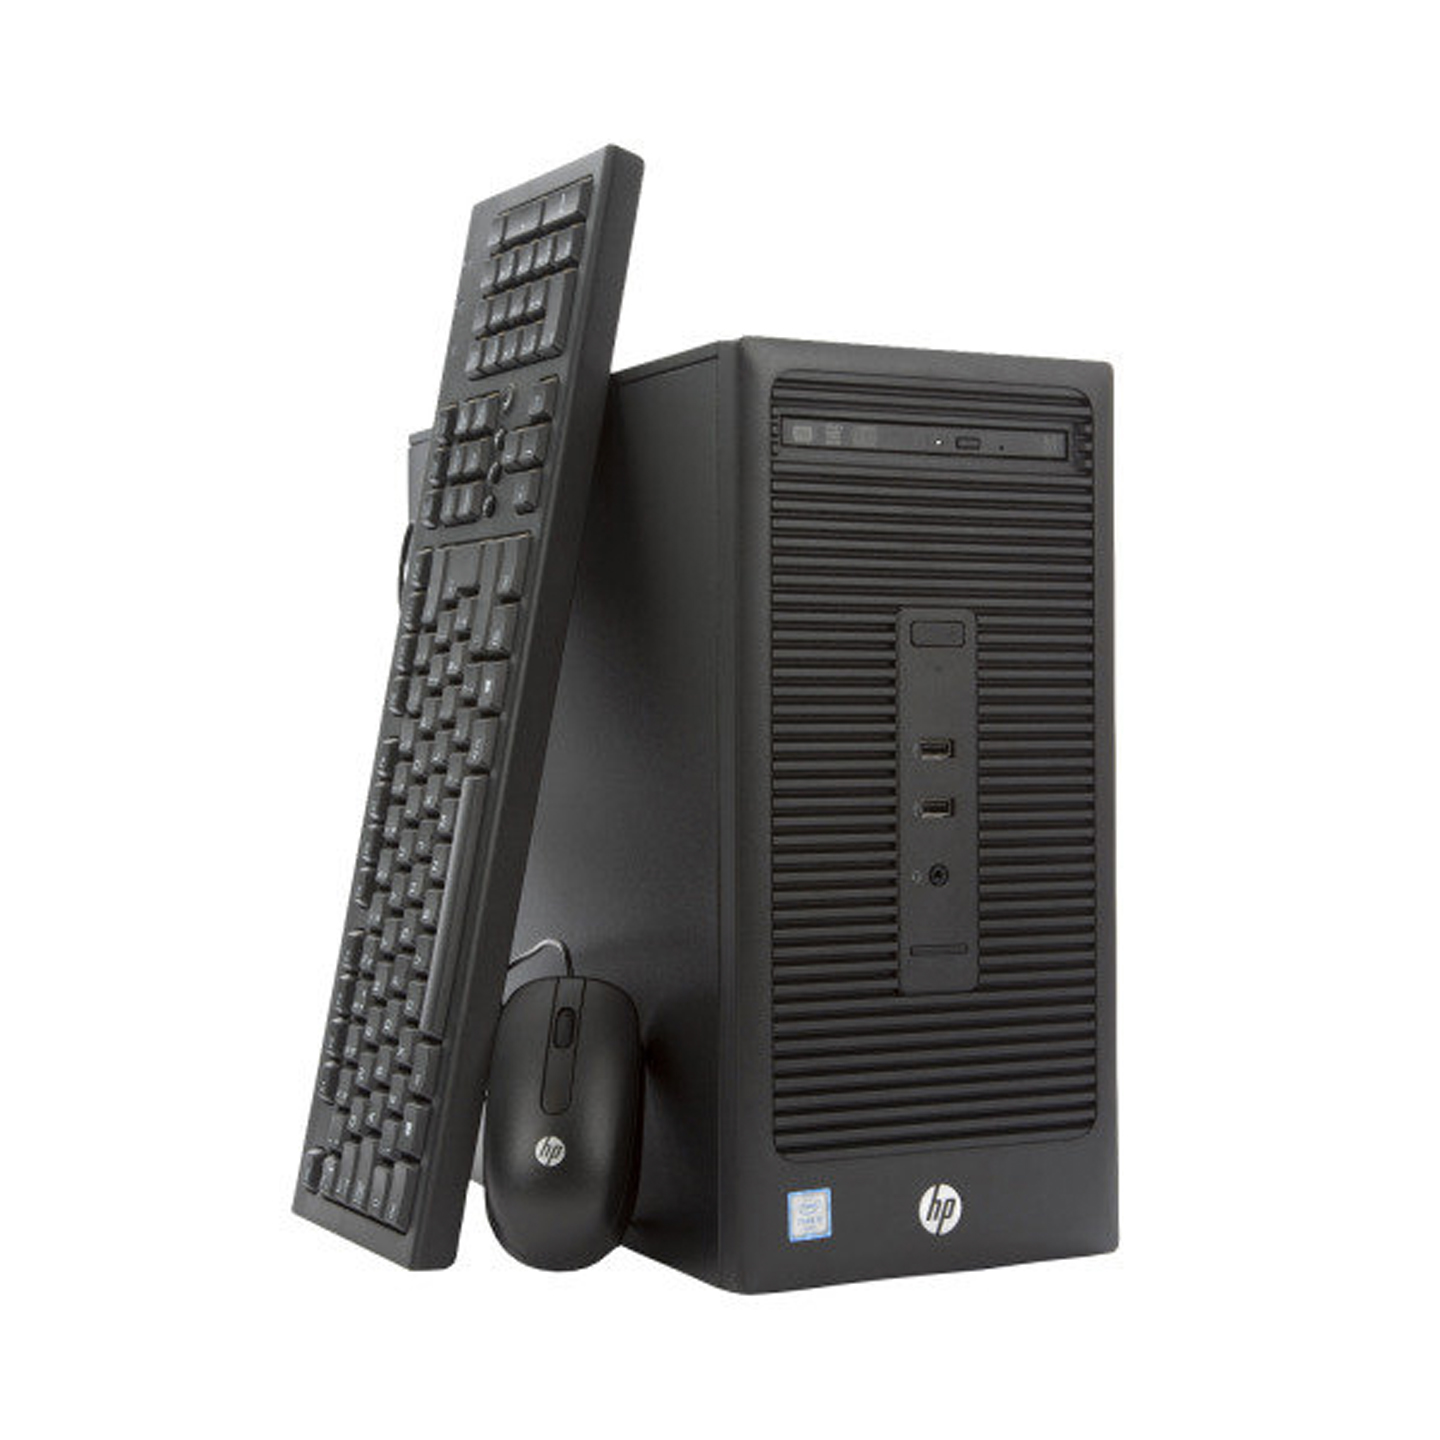 HP 280 G2 MT Desktop PC